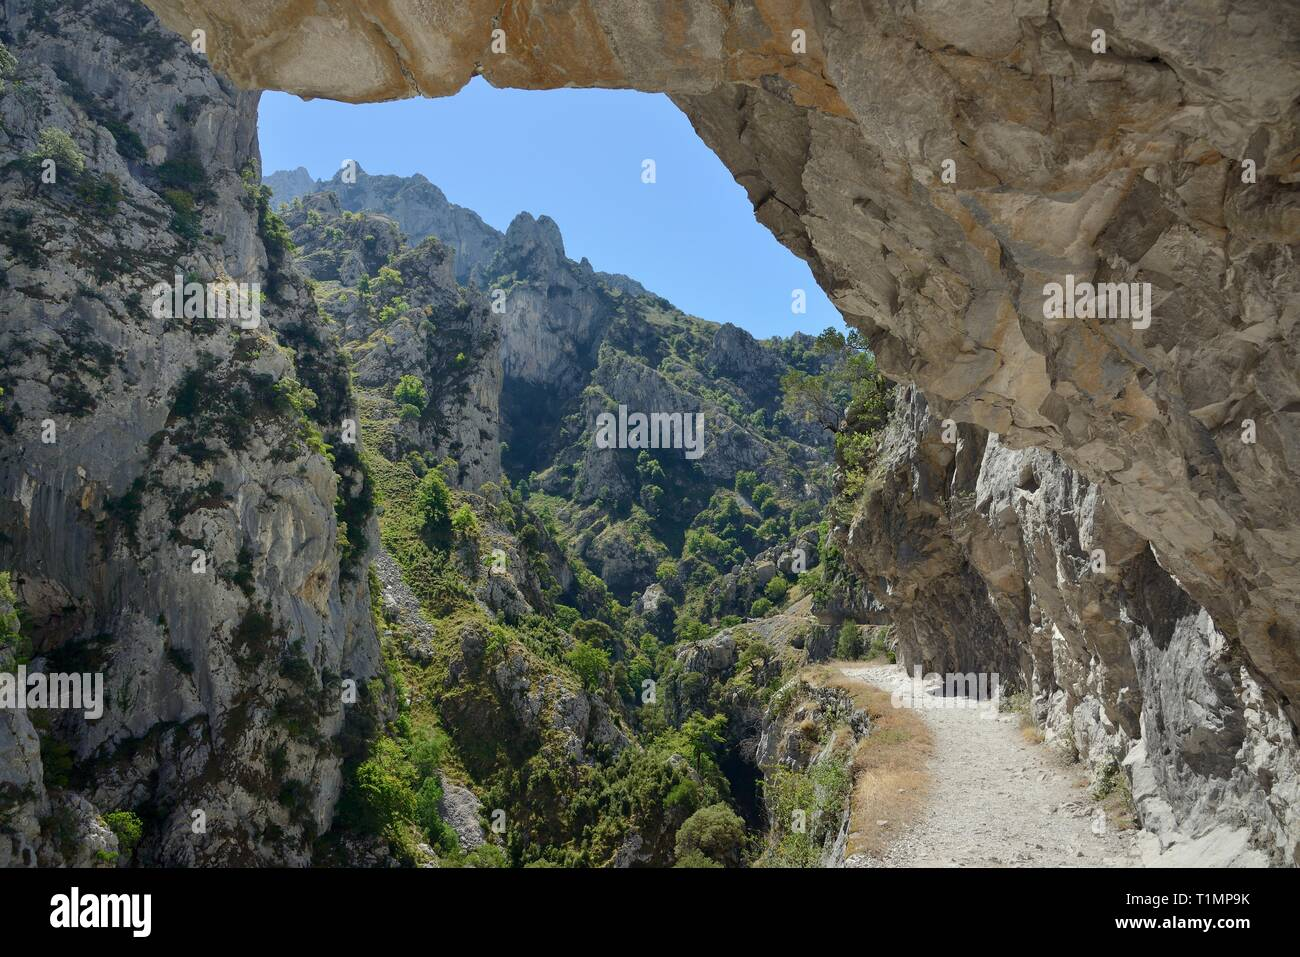 Cares Gorge trail with overhanging rocks and an 800m drop beside the path in places, Picos de Europa mountains, Asturias, Spain, August 2016. - Stock Image